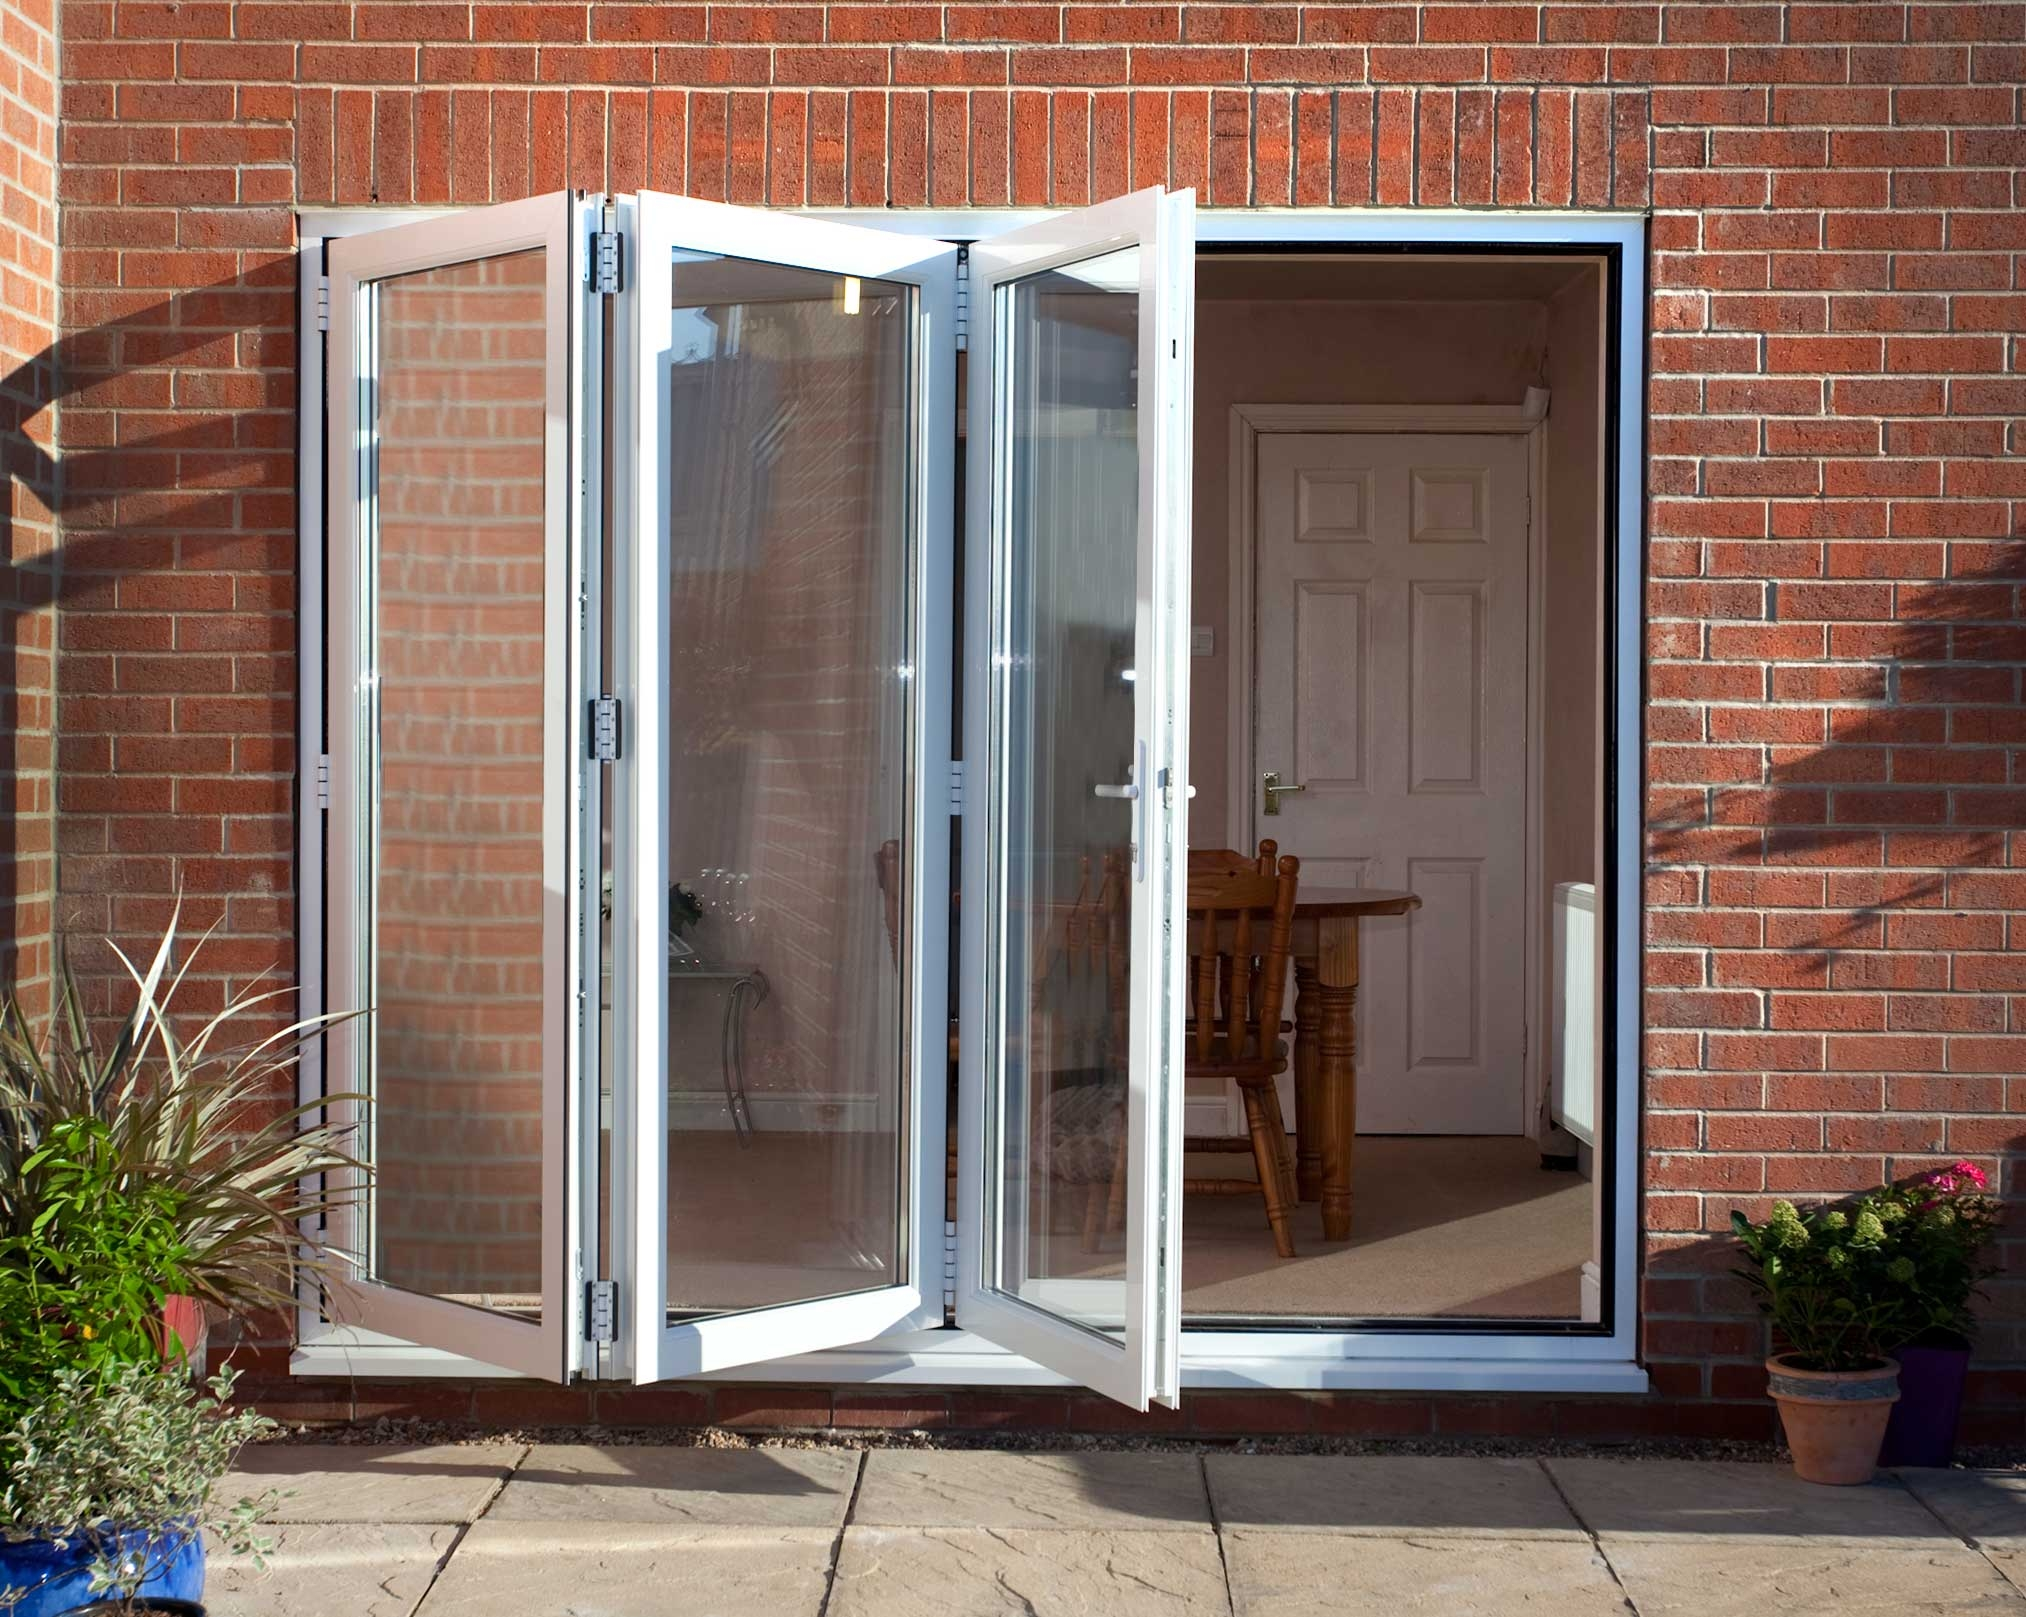 Upvc Bi Fold Sliding Patio Doors2026 X 1617